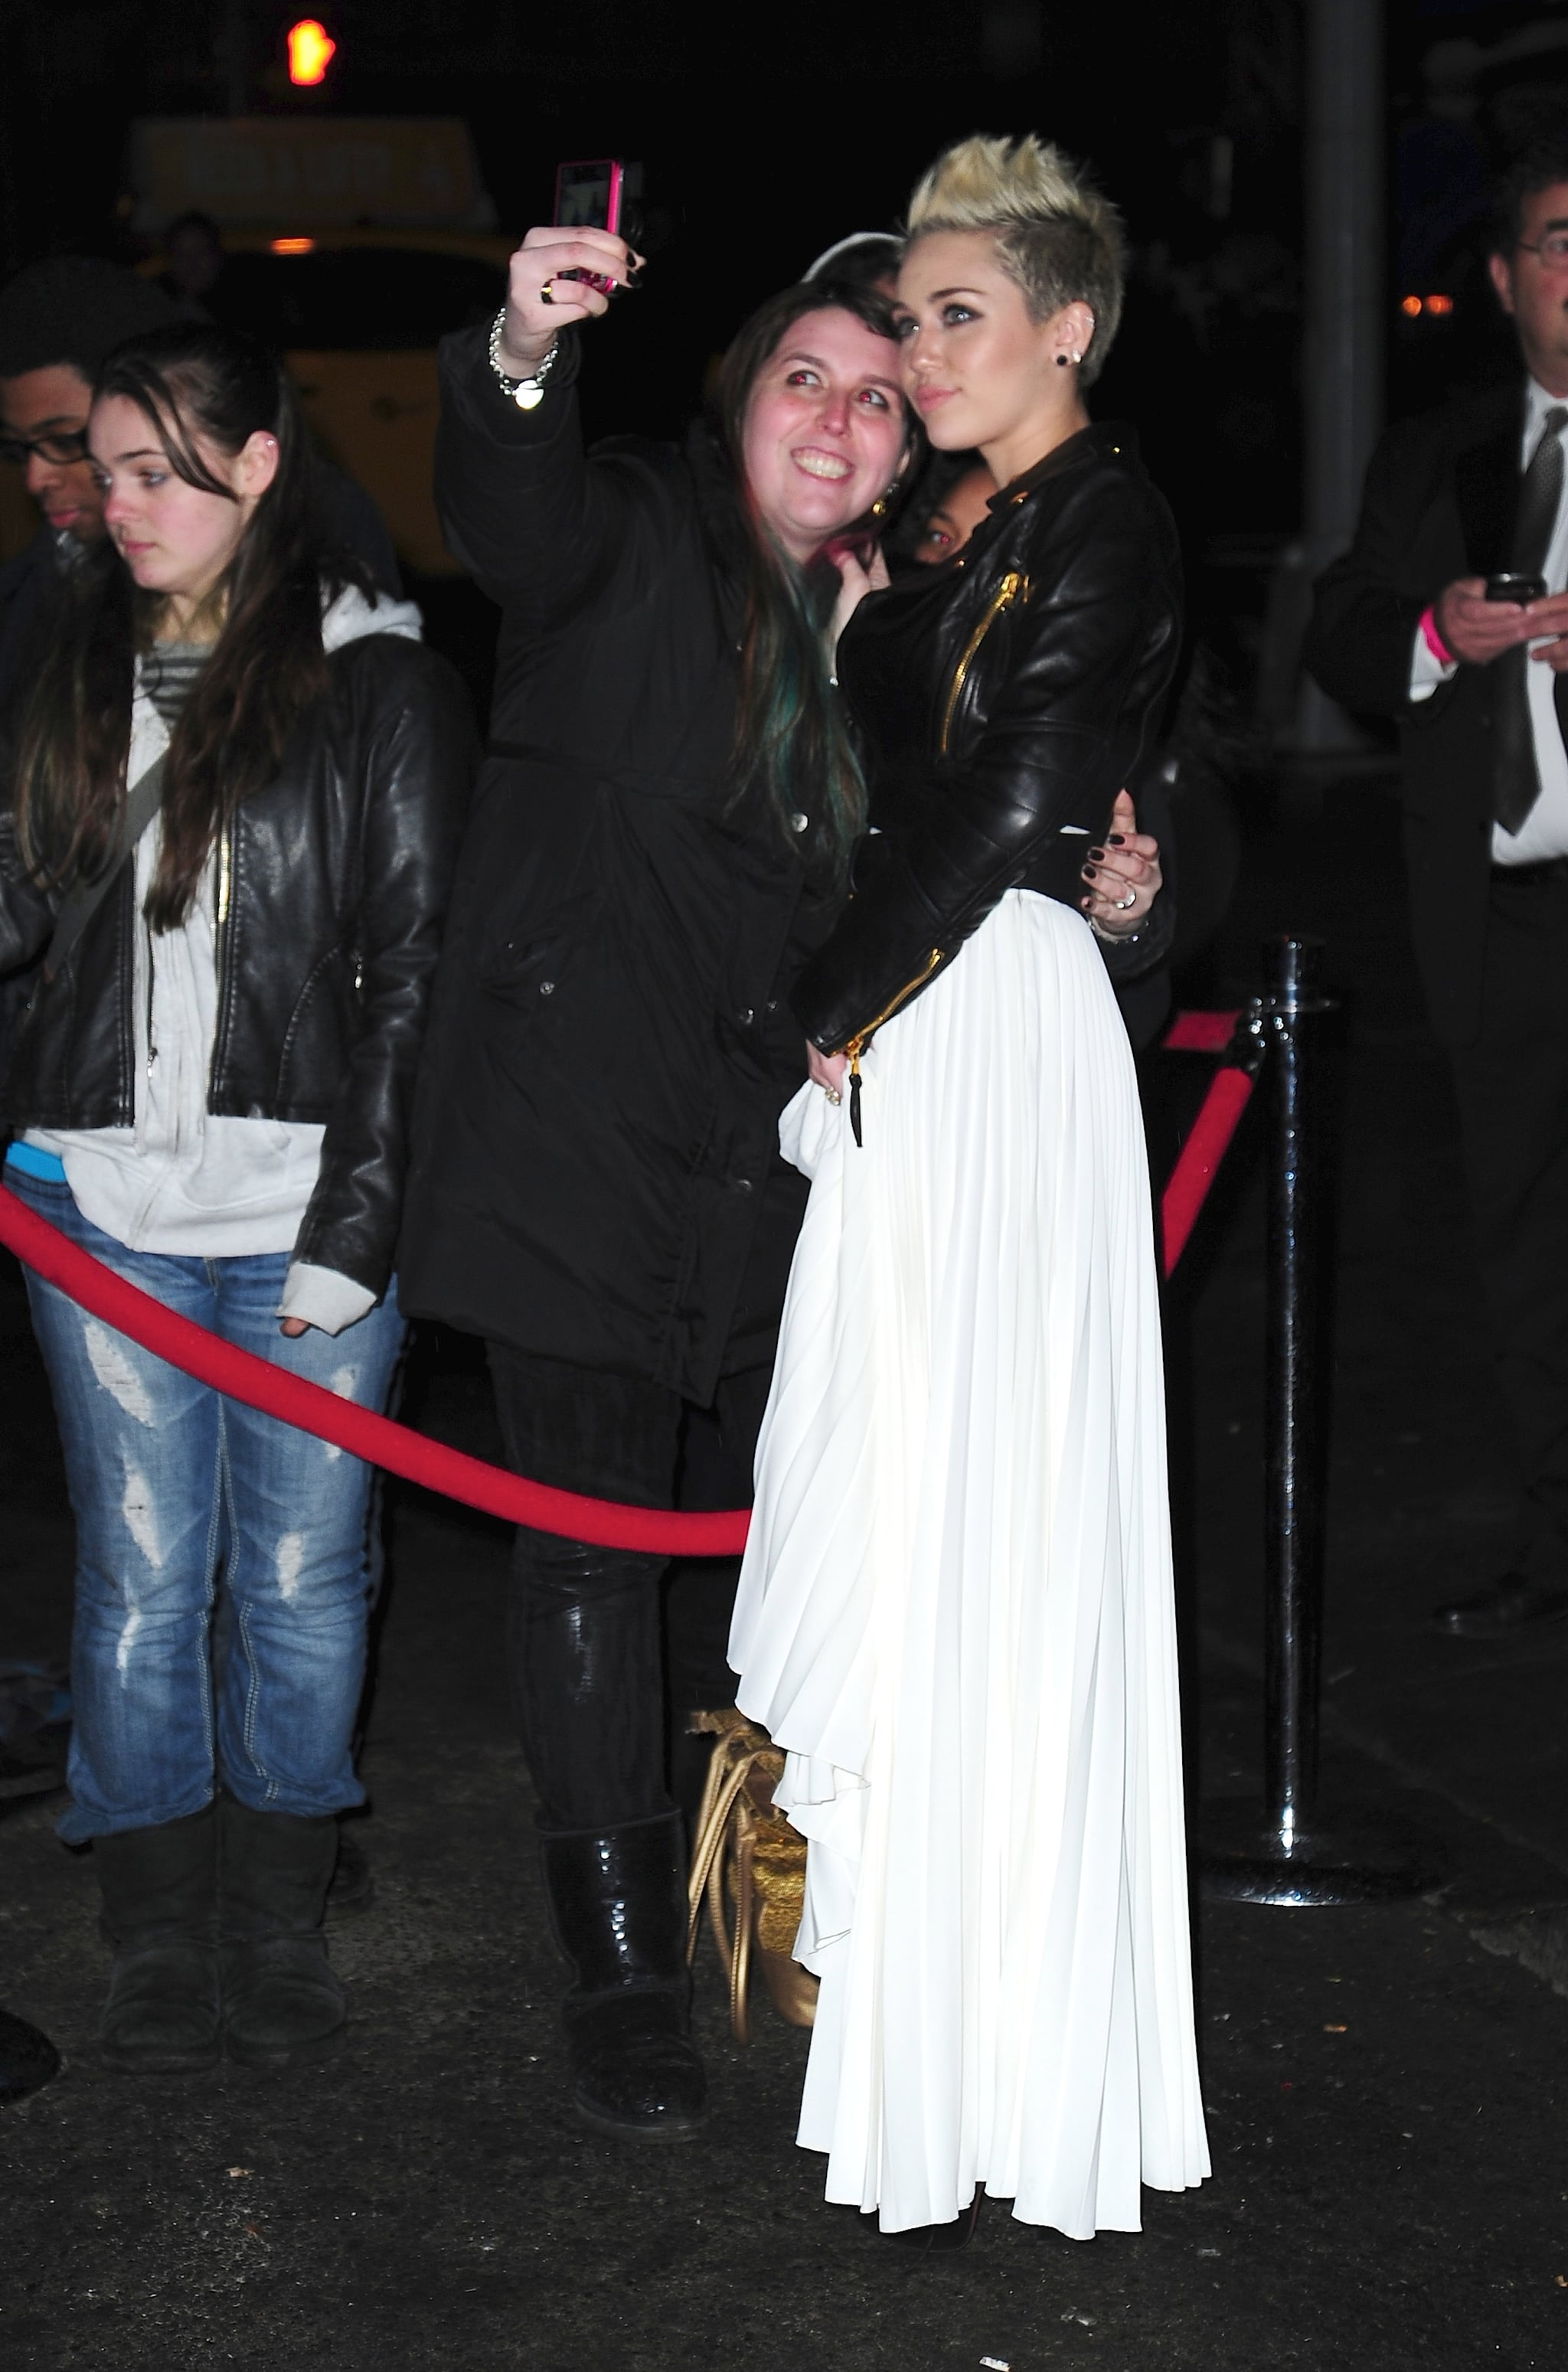 Miley Cyrus posed for pictures with fans on her way into the party.